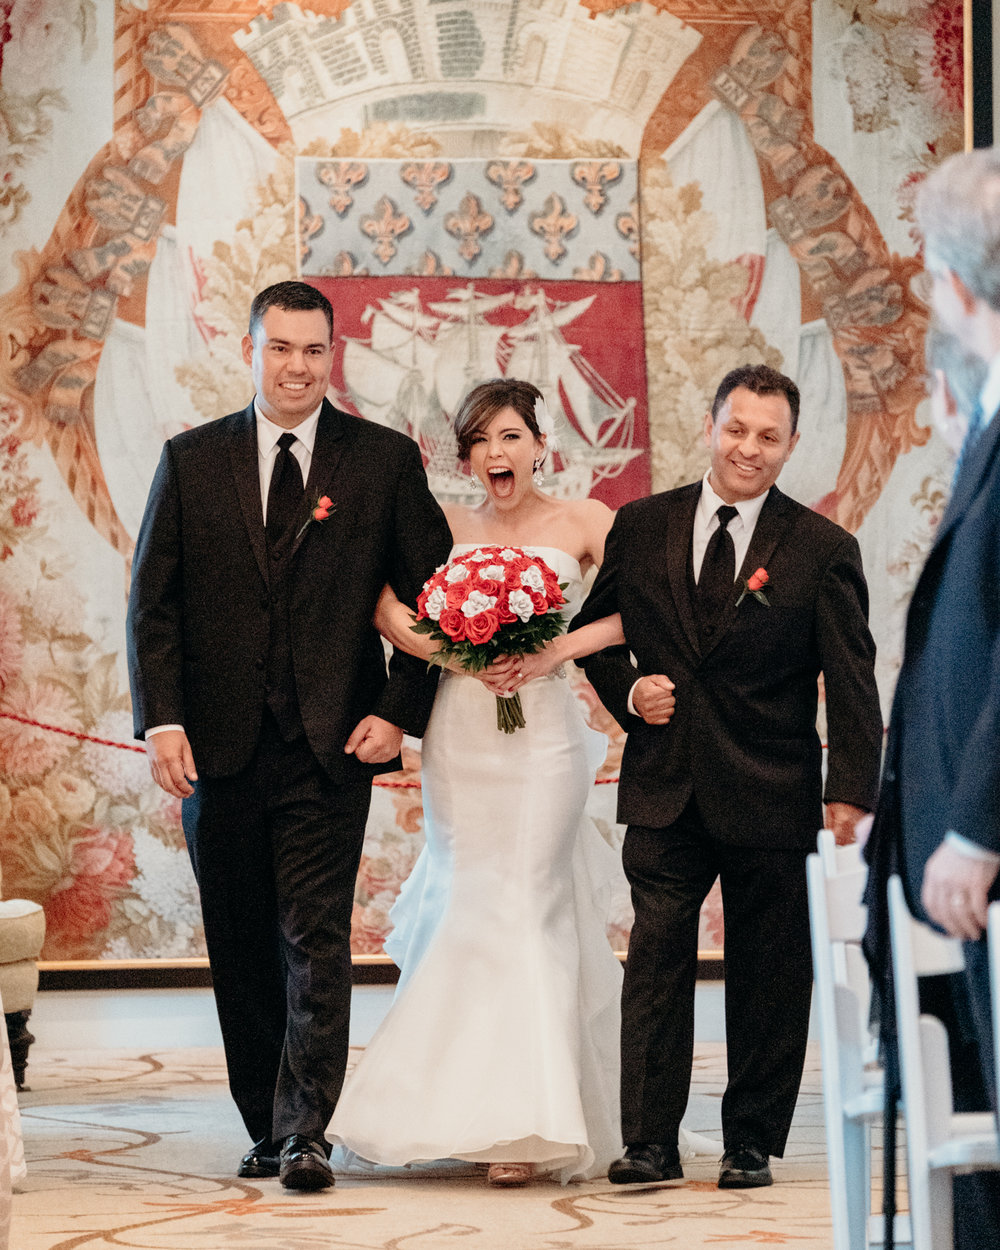 Bride escorted by uncles down the aisle laughs in joy at her wedding